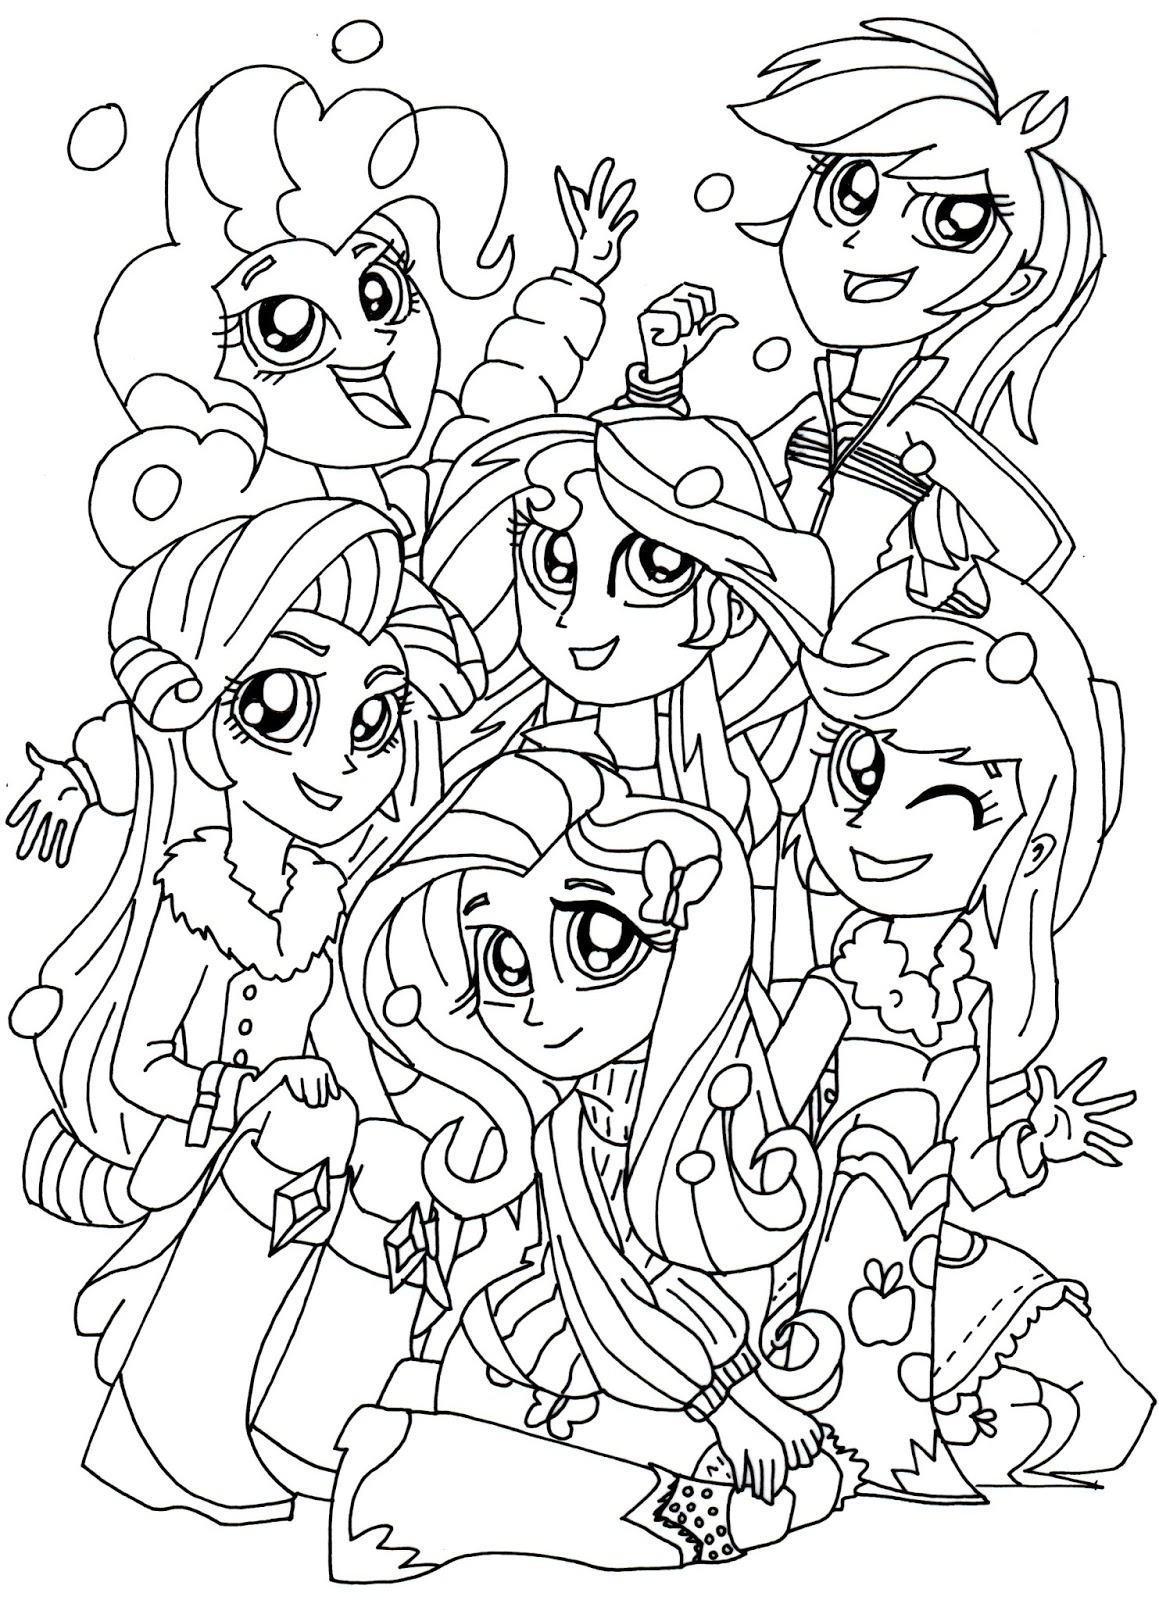 sunset shimmer human coloring pages - photo#31